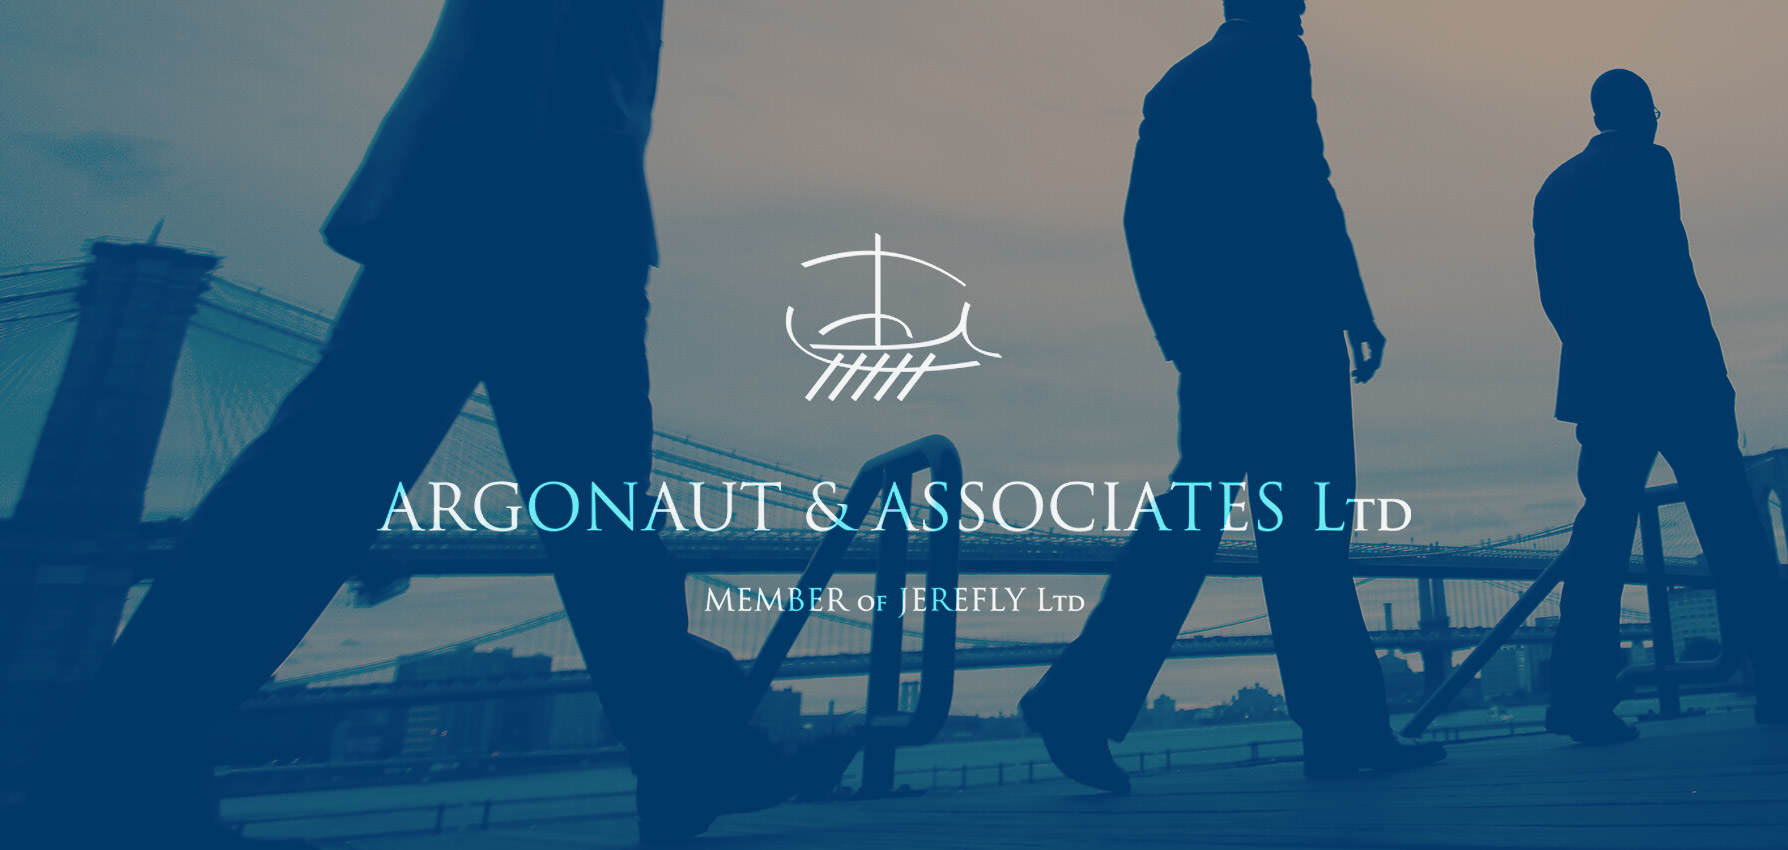 Argonaut & Associates